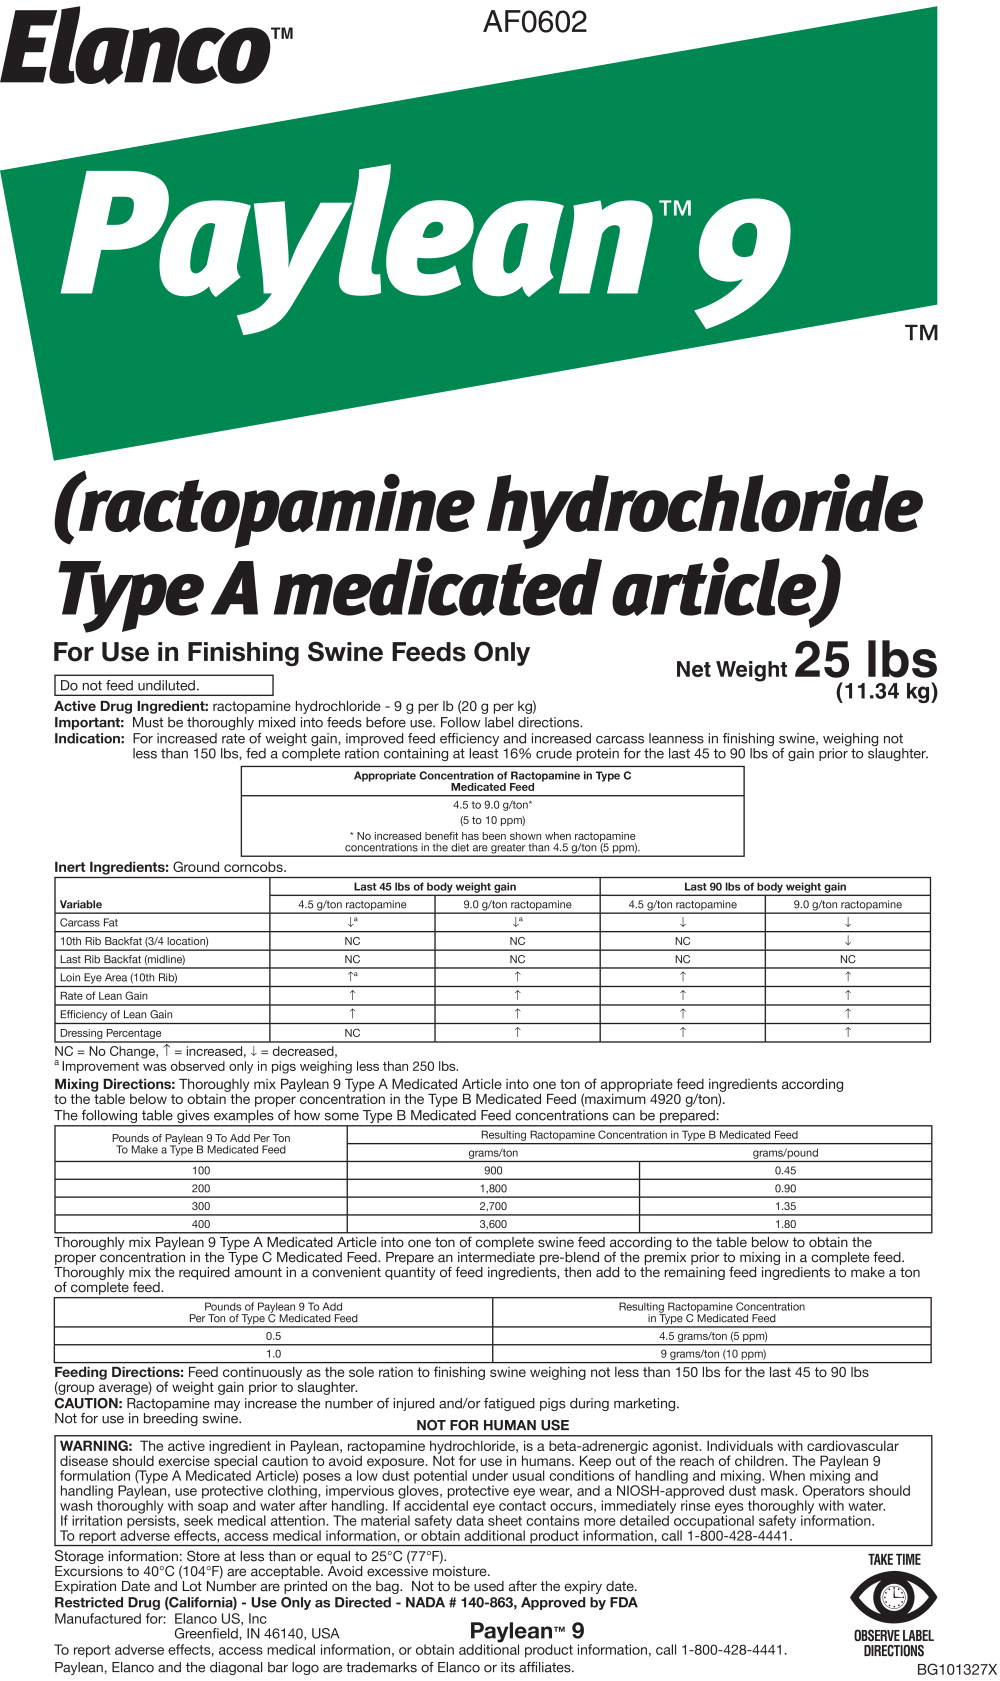 Principal Display Panel – 25 lbs Bag Label